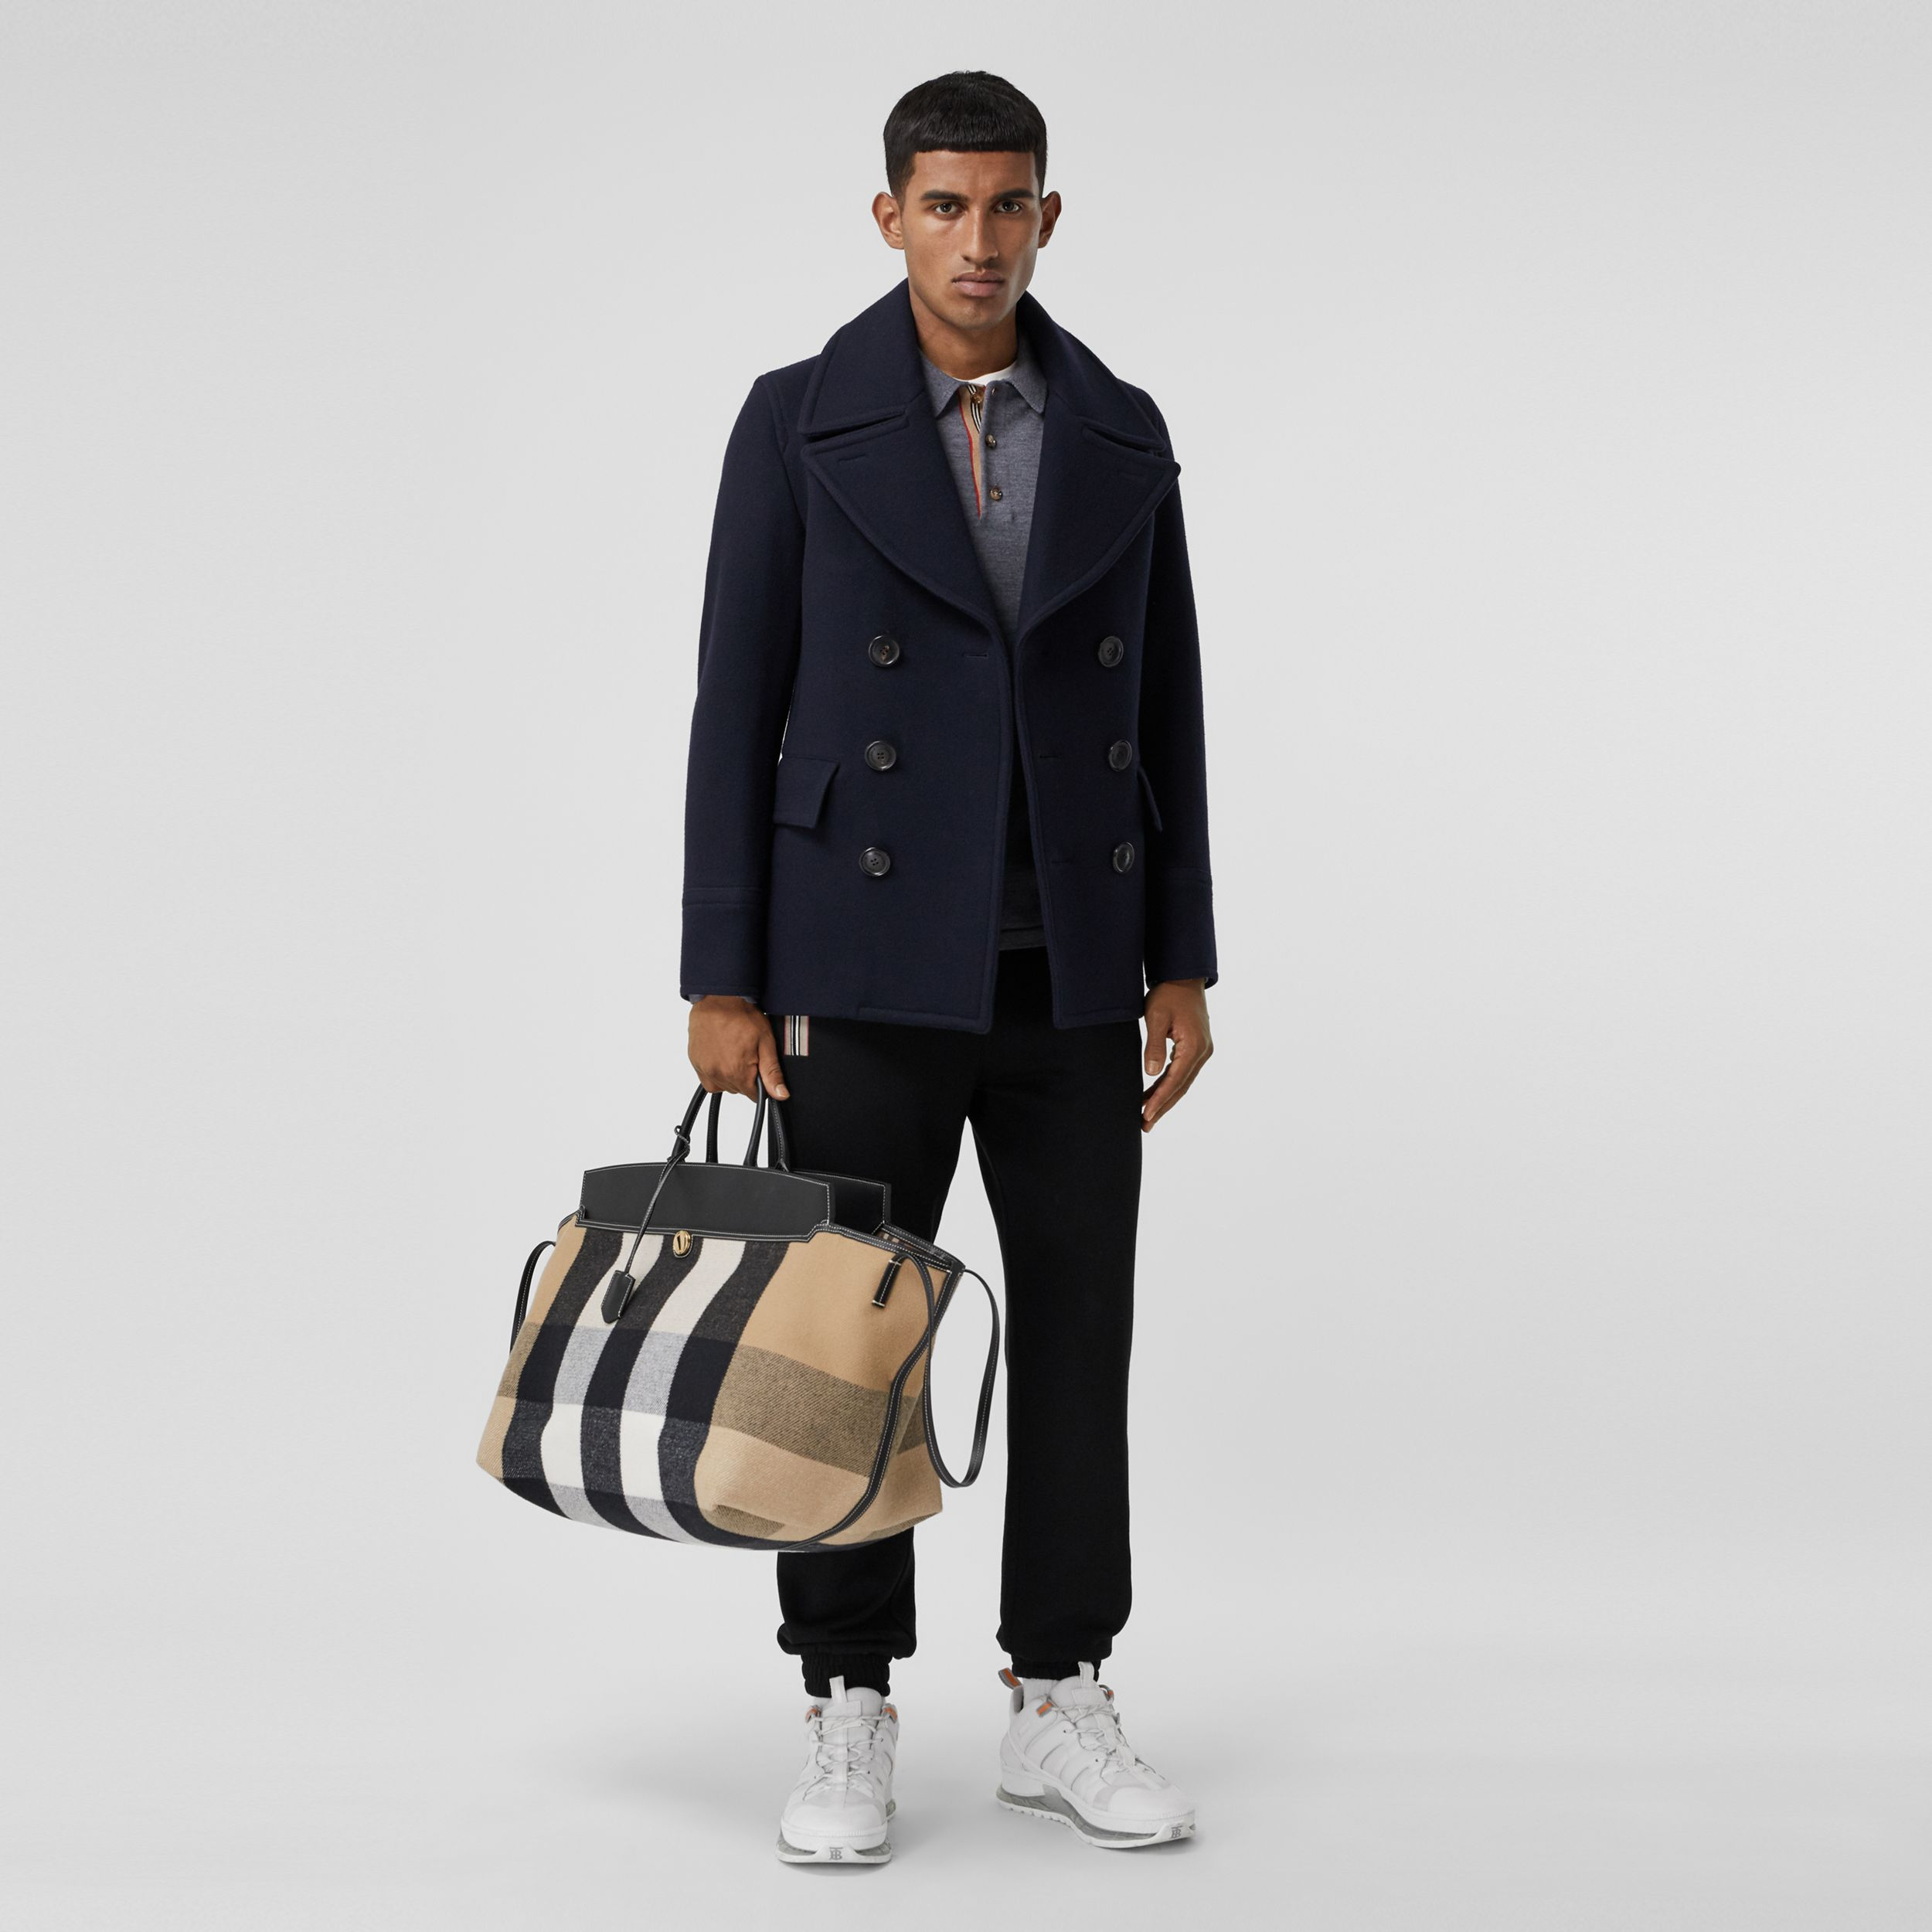 Wool Blend Pea Coat in Navy - Men | Burberry United States - 1